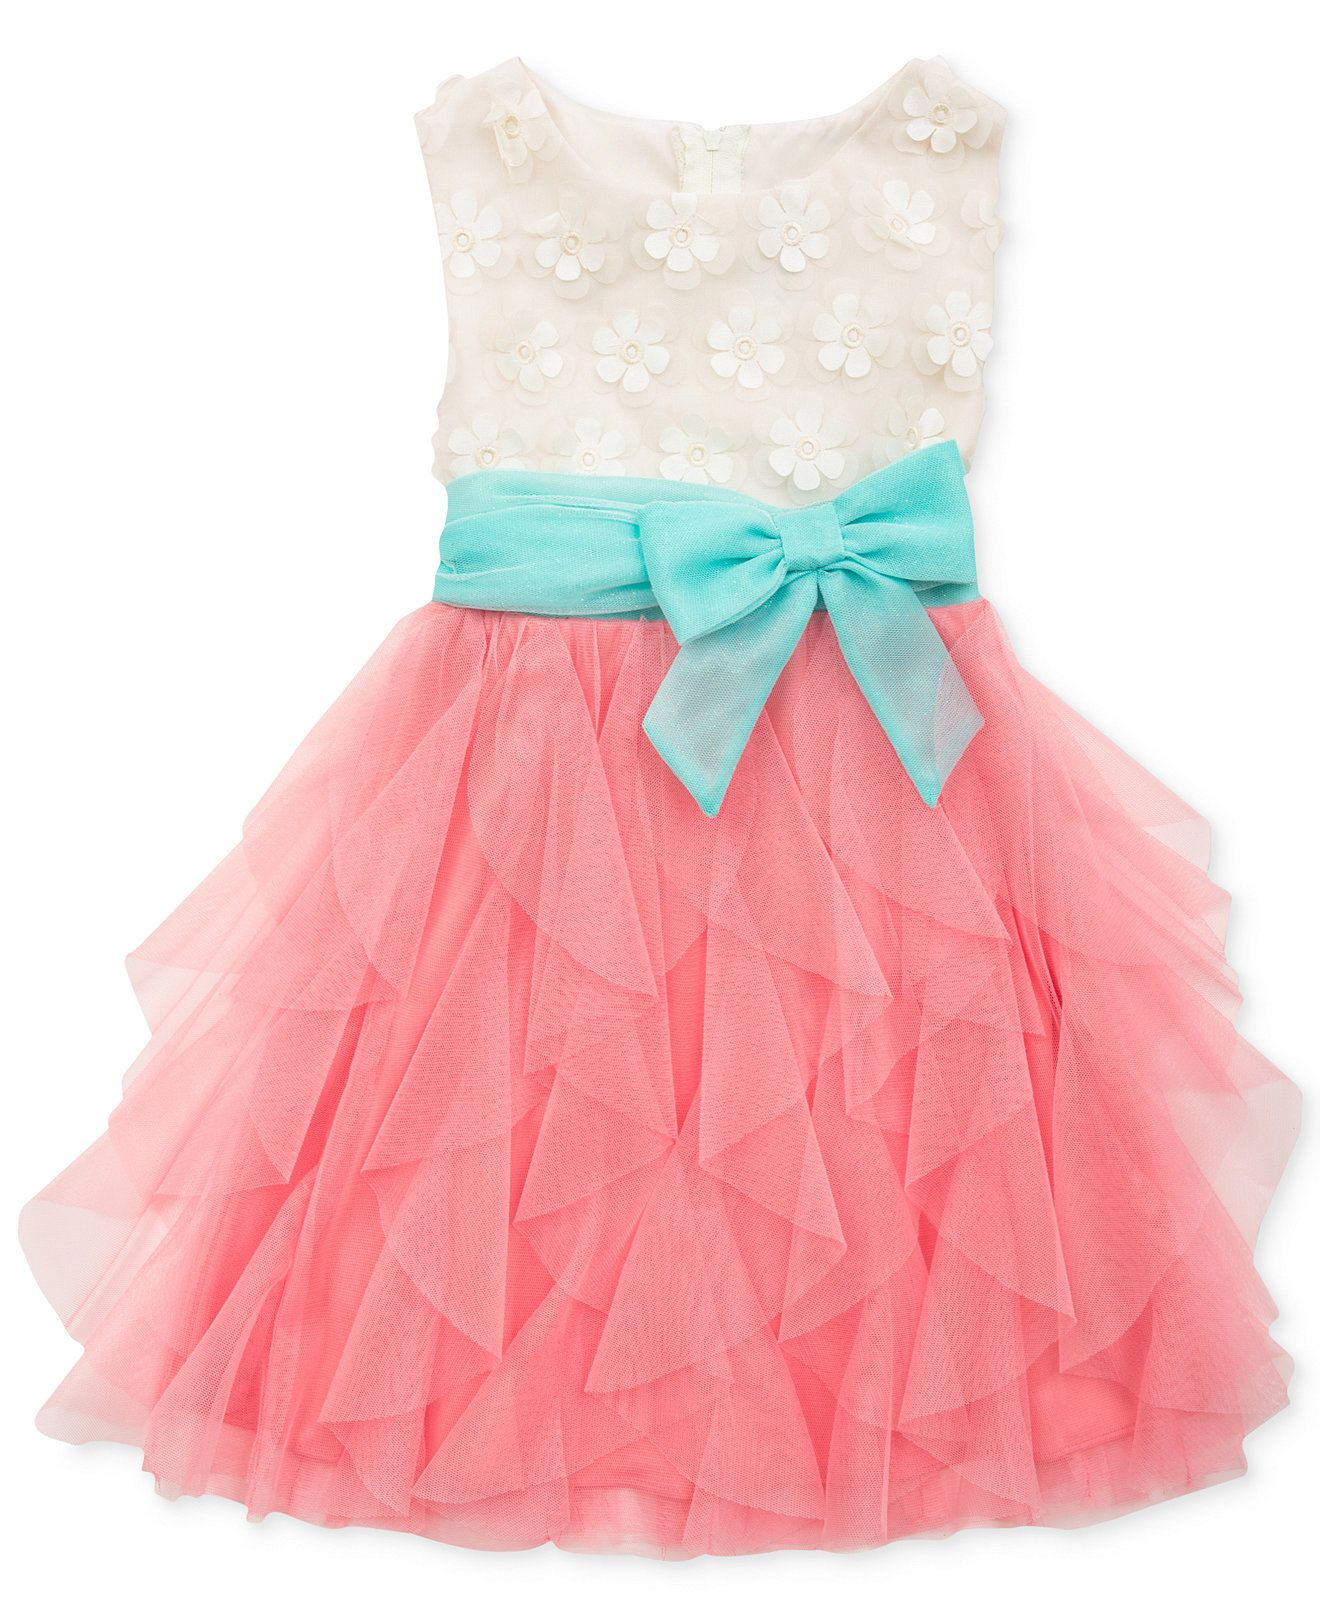 Rare Editions Little Girls\' Lace-to-Ruffle Dress - Kids Girls ...